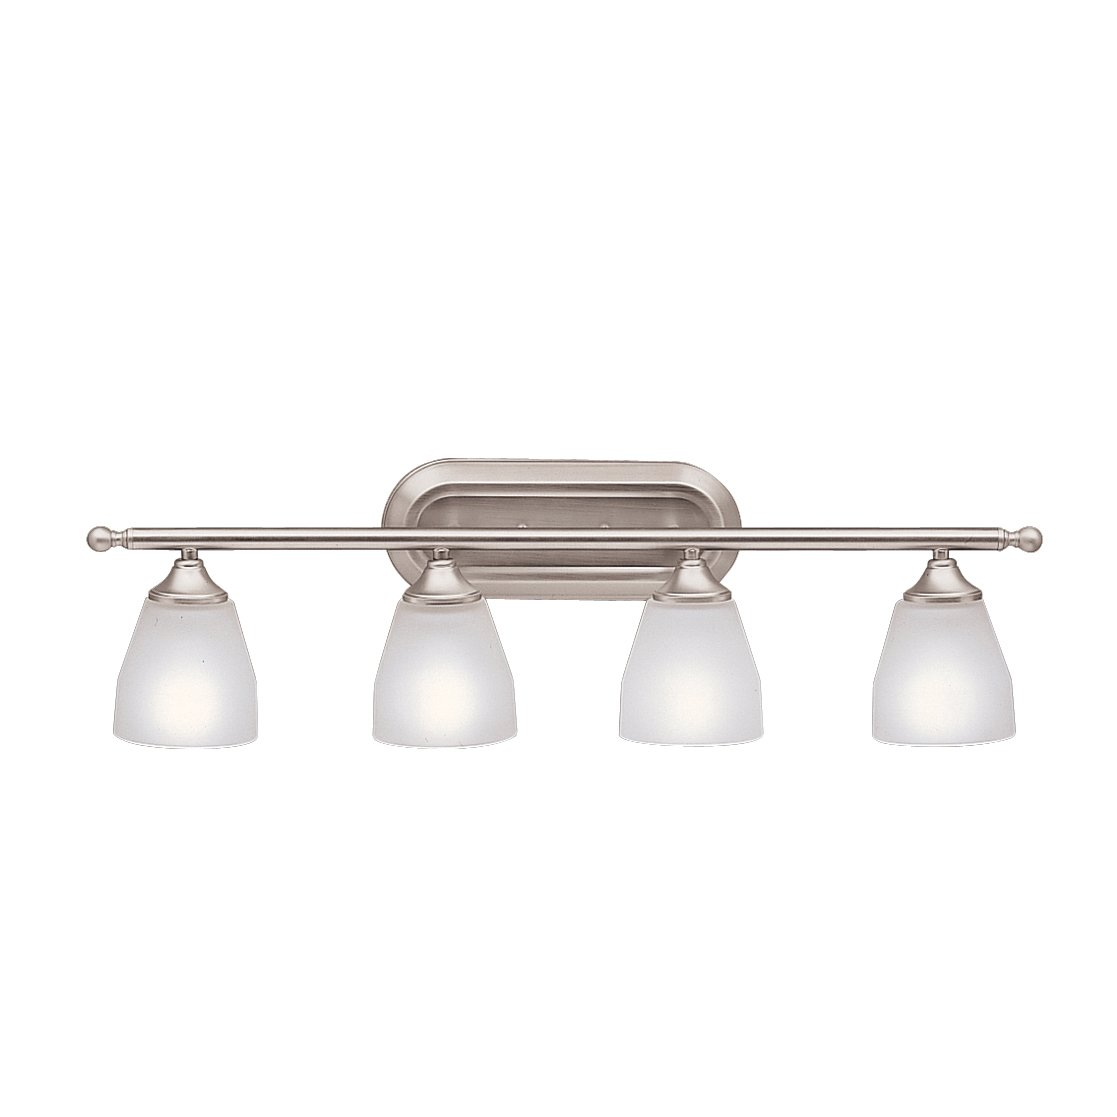 Kichler 5449ni ansonia bath 4 light brushed nickel vanity kichler 5449ni ansonia bath 4 light brushed nickel vanity lighting fixtures amazon aloadofball Choice Image